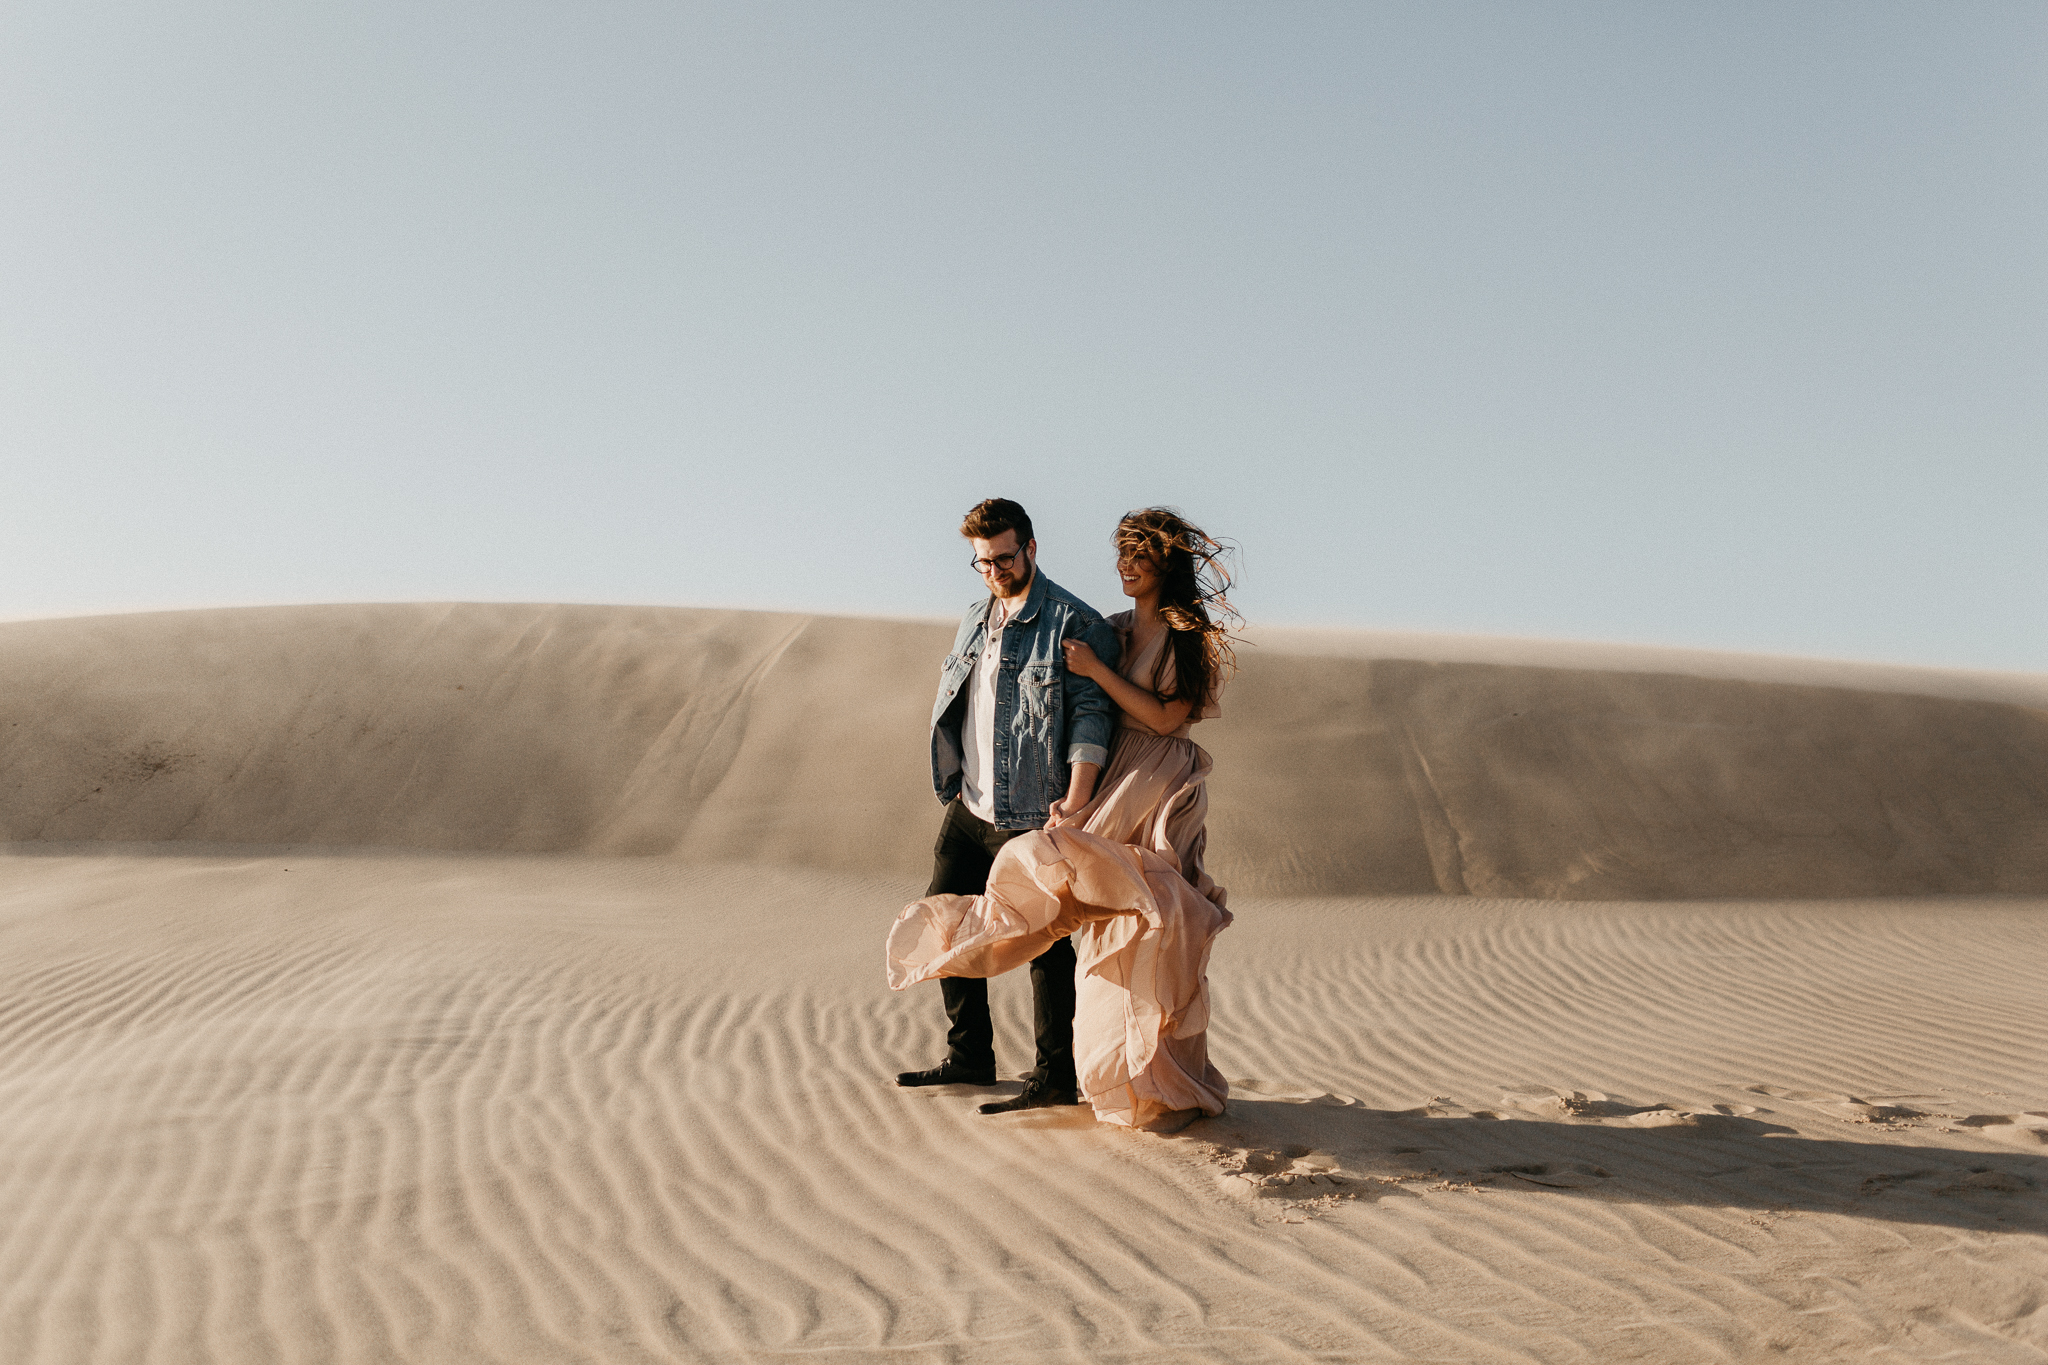 eastlyn-bright-silver-lake-sand-dunes-michigan-wedding-engagement-photographer-24.jpg